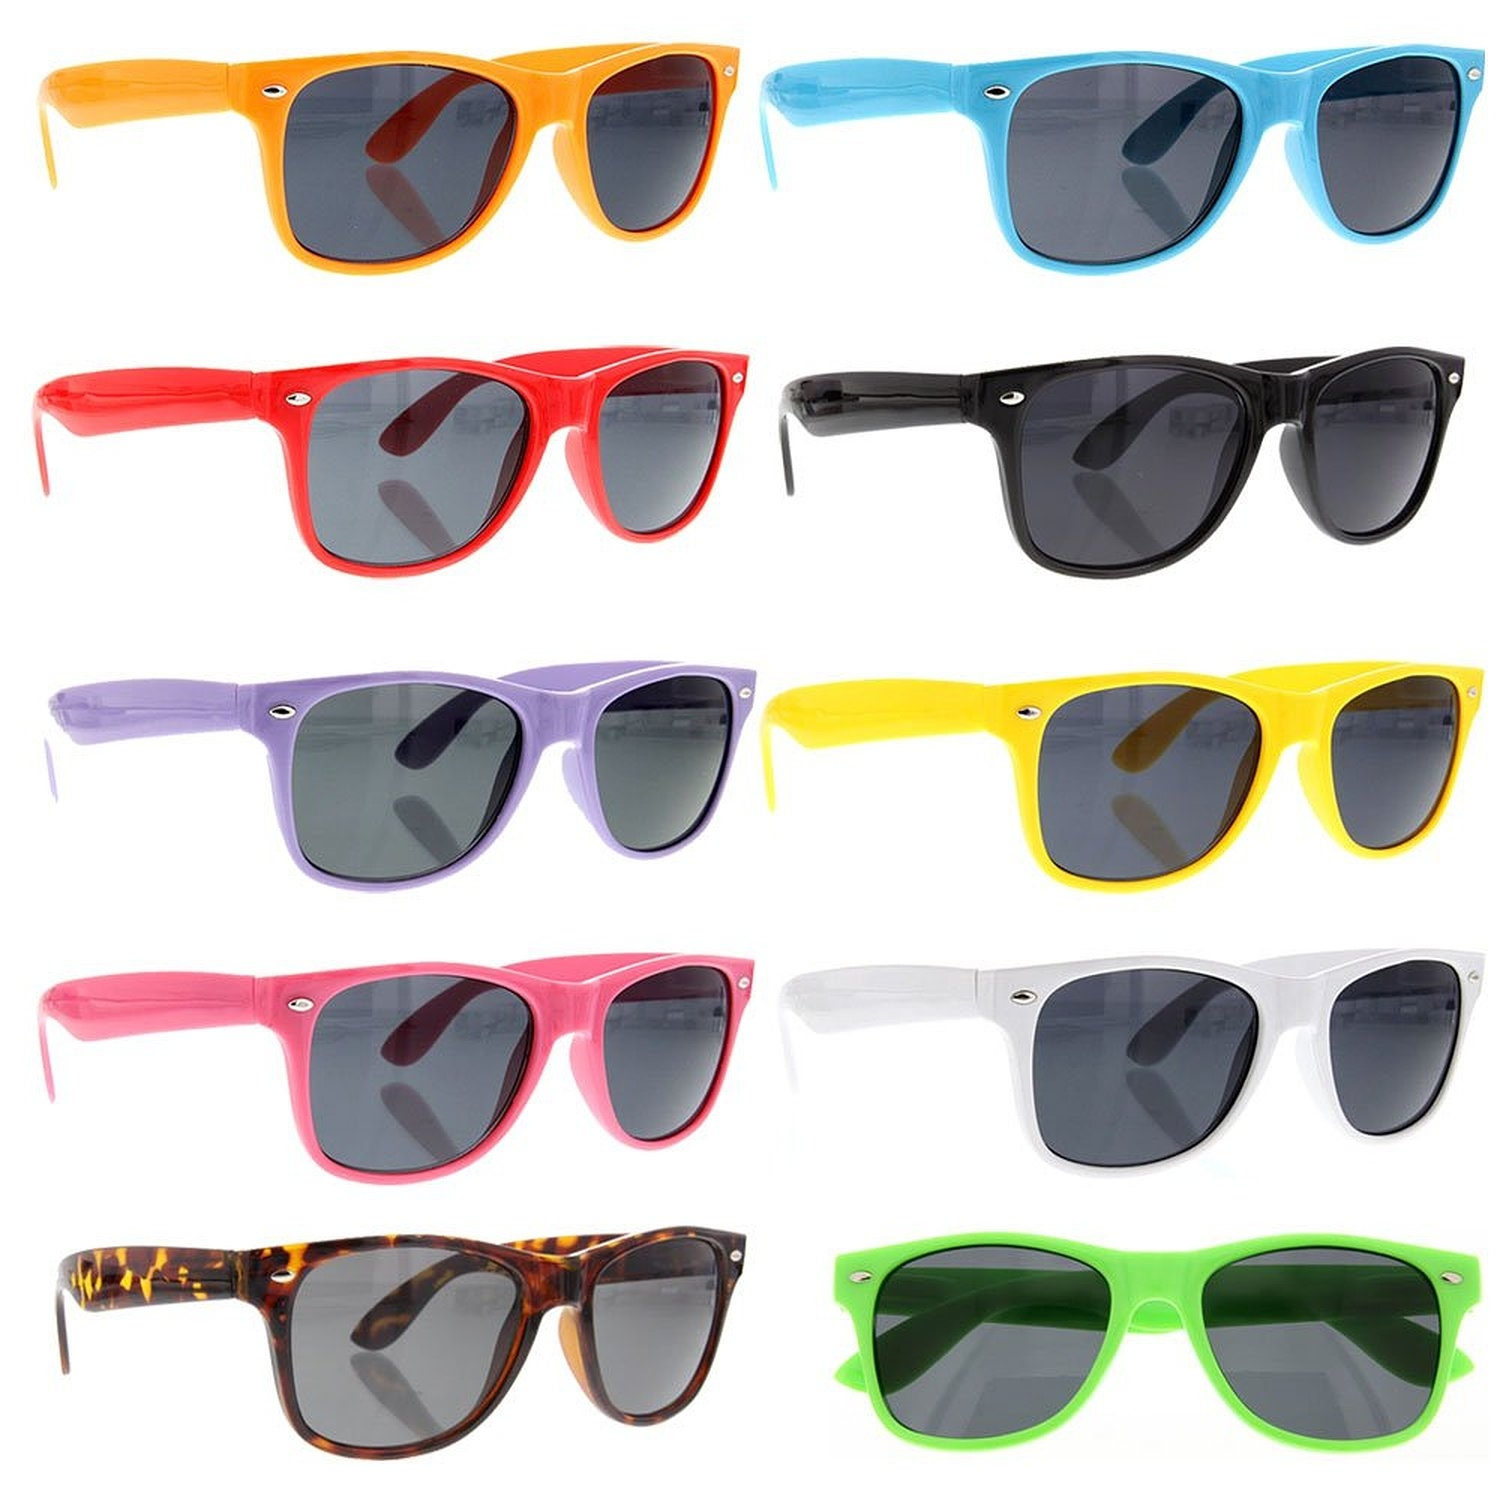 Buying Bulk Sunglasses